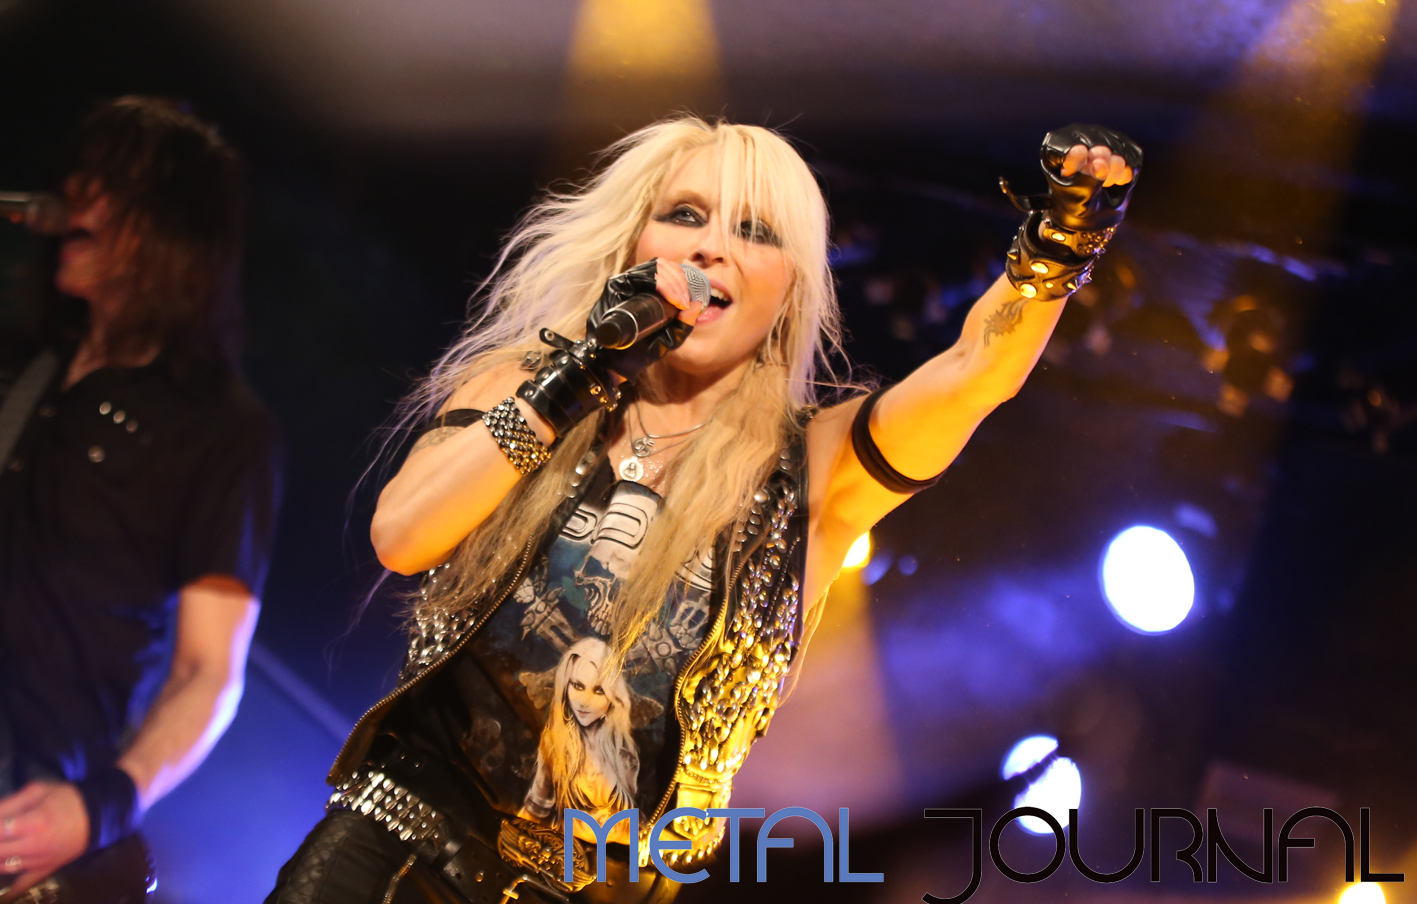 doro metal journal 2019 pic 1